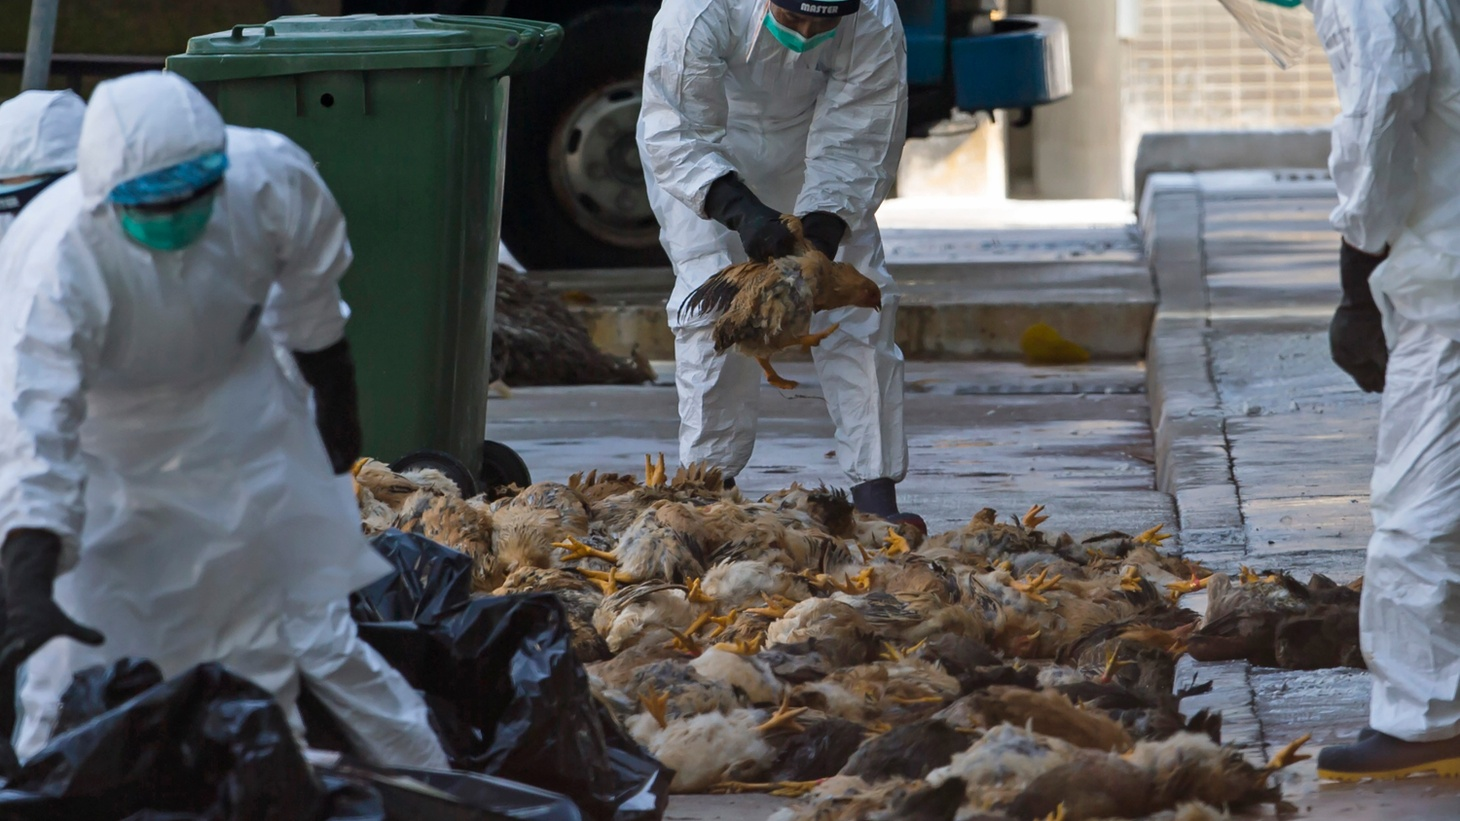 America's poultry industry is under assault as never before from bird flu. It's thought to have started with migrating wild geese, but nobody knows why it's spreading. So far, there's no threat to the food supply, but prices could be on the rise and the future is full of uncertainties.